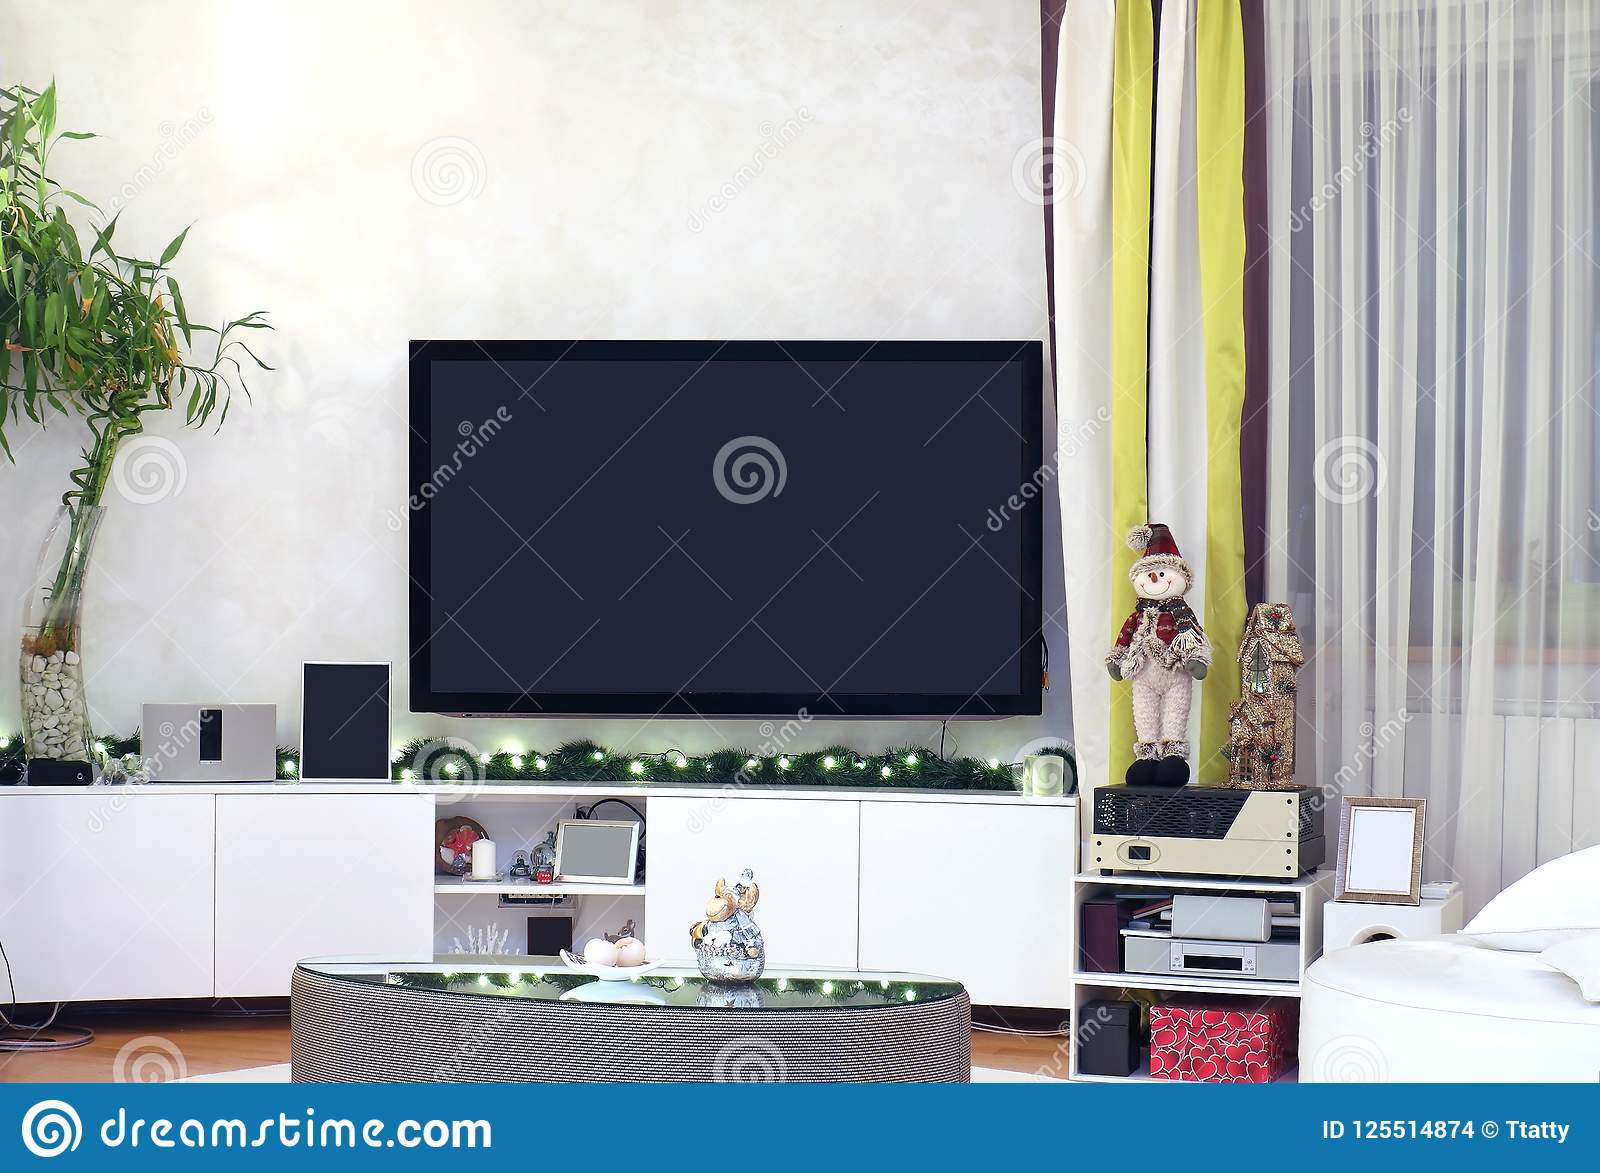 Large TV Room With Christmas Decorations Stock Photo , Image